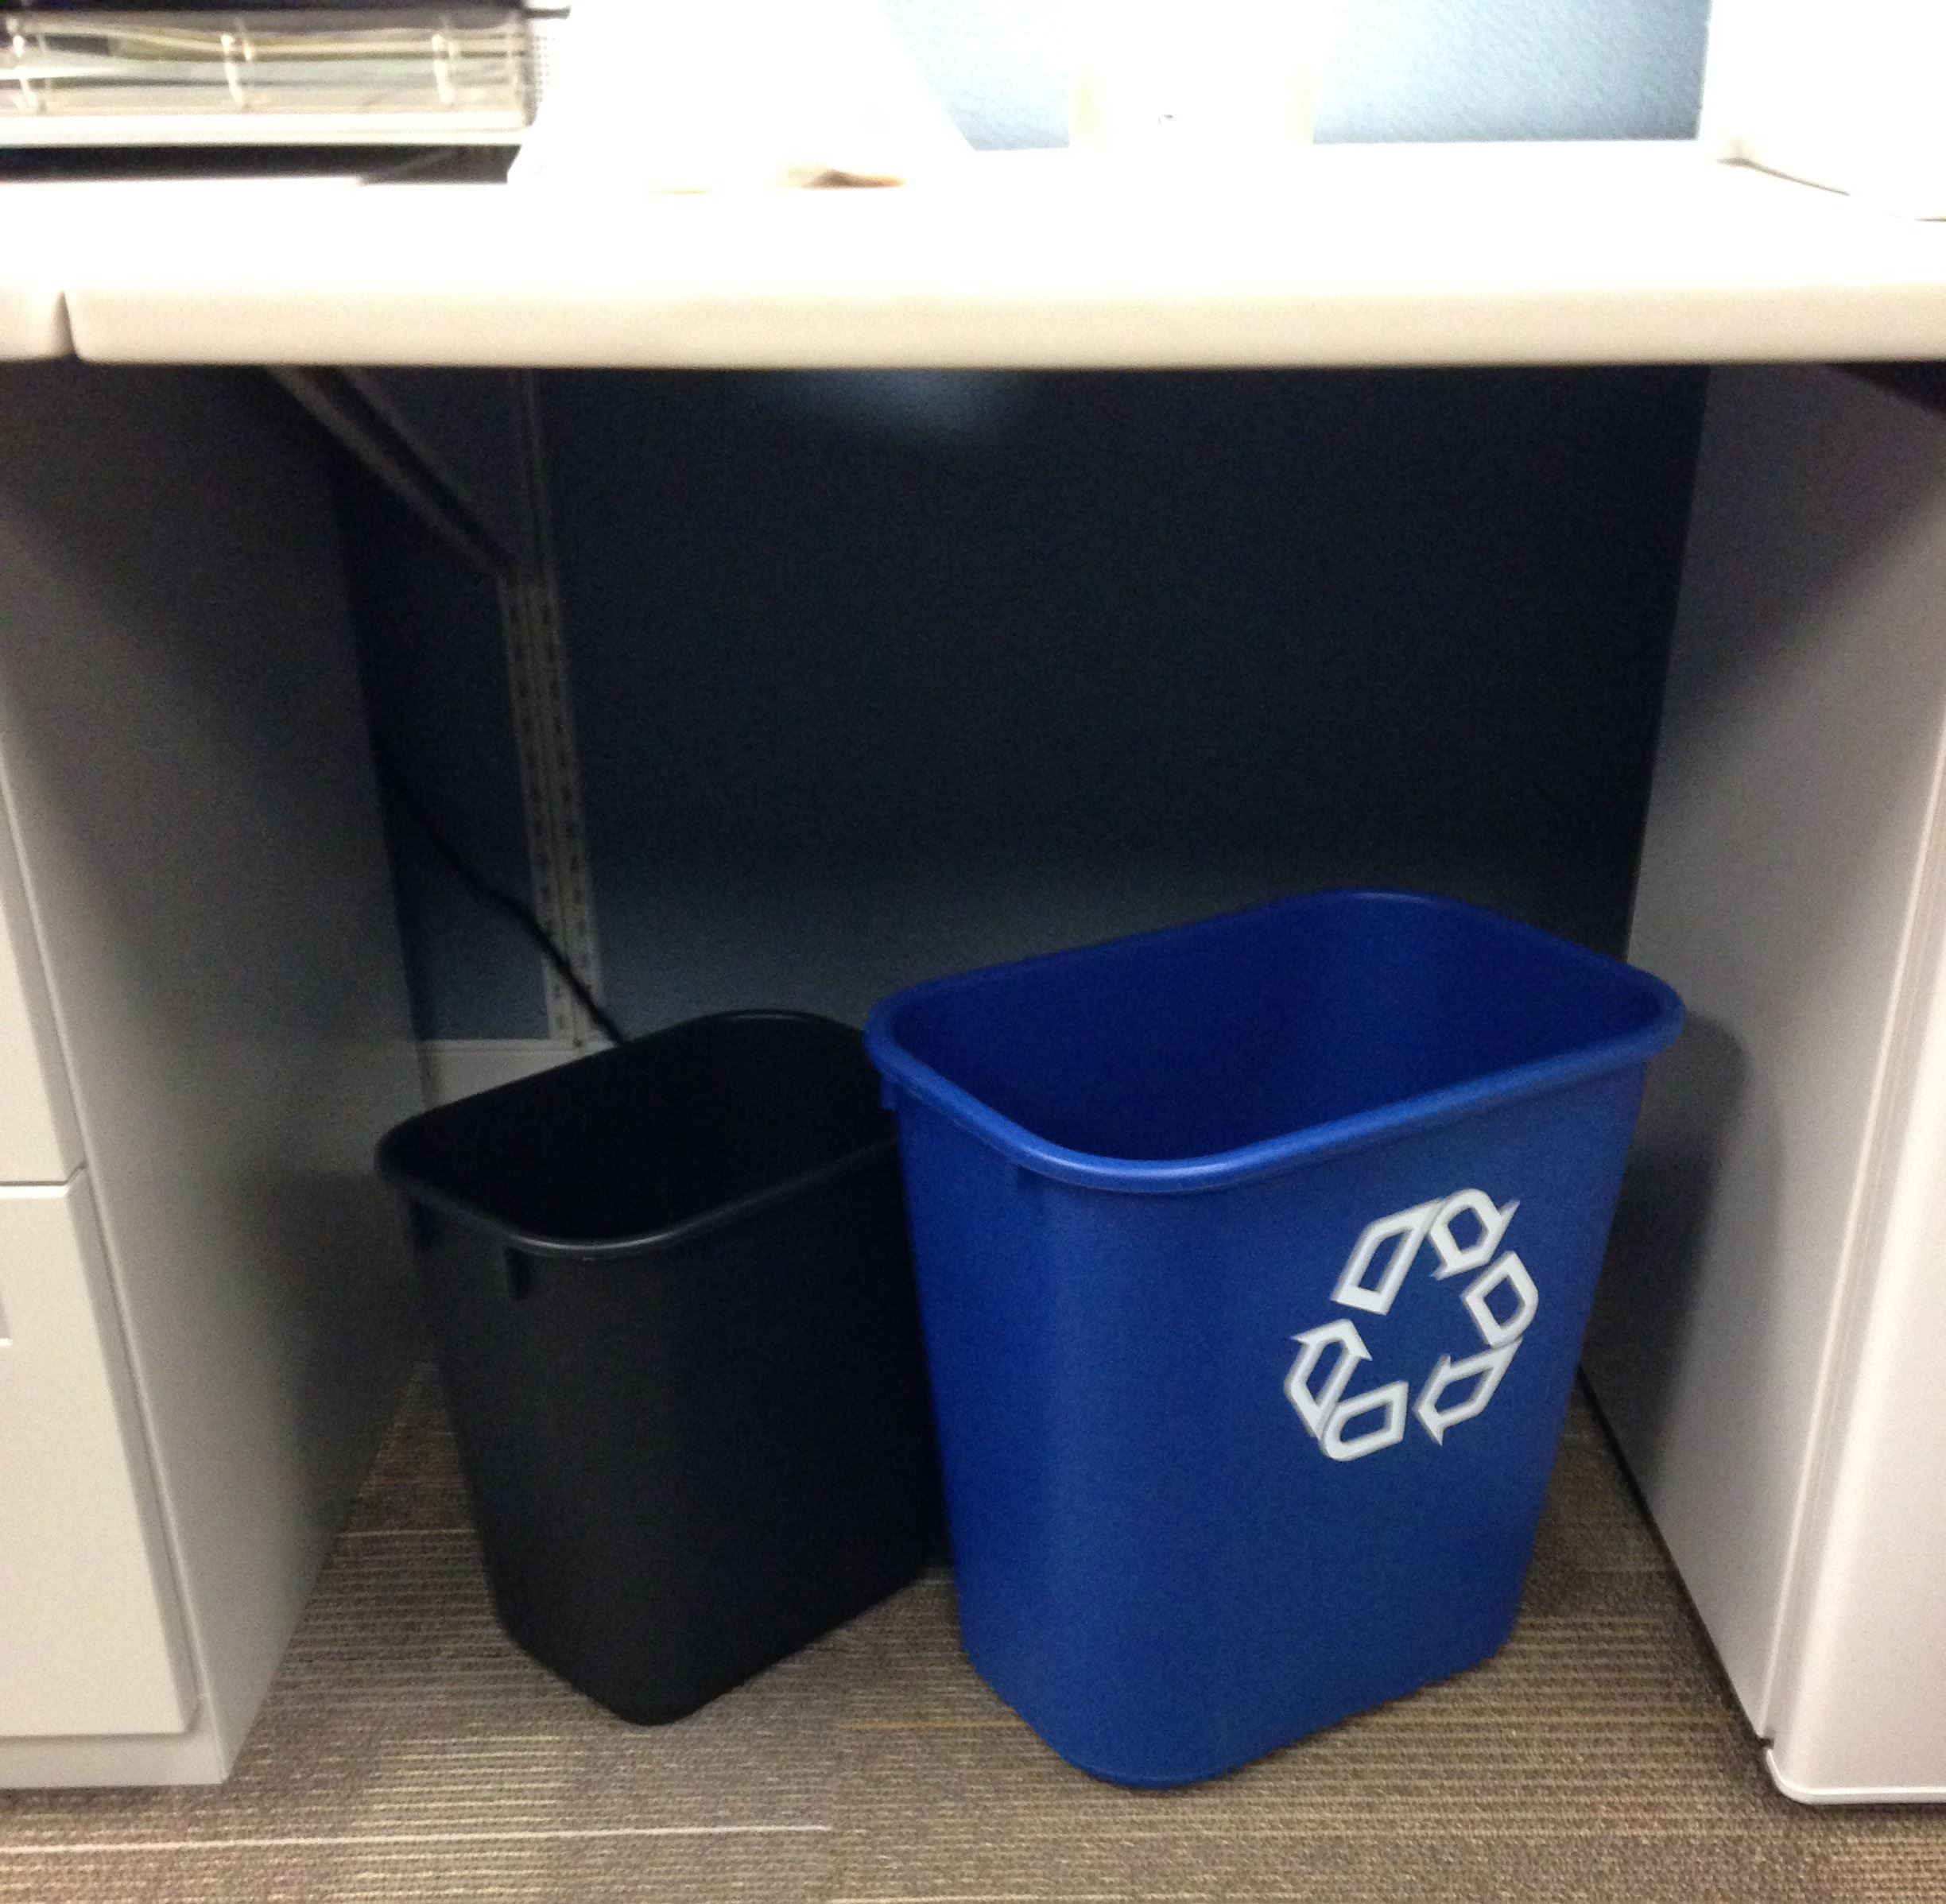 Deskside bins